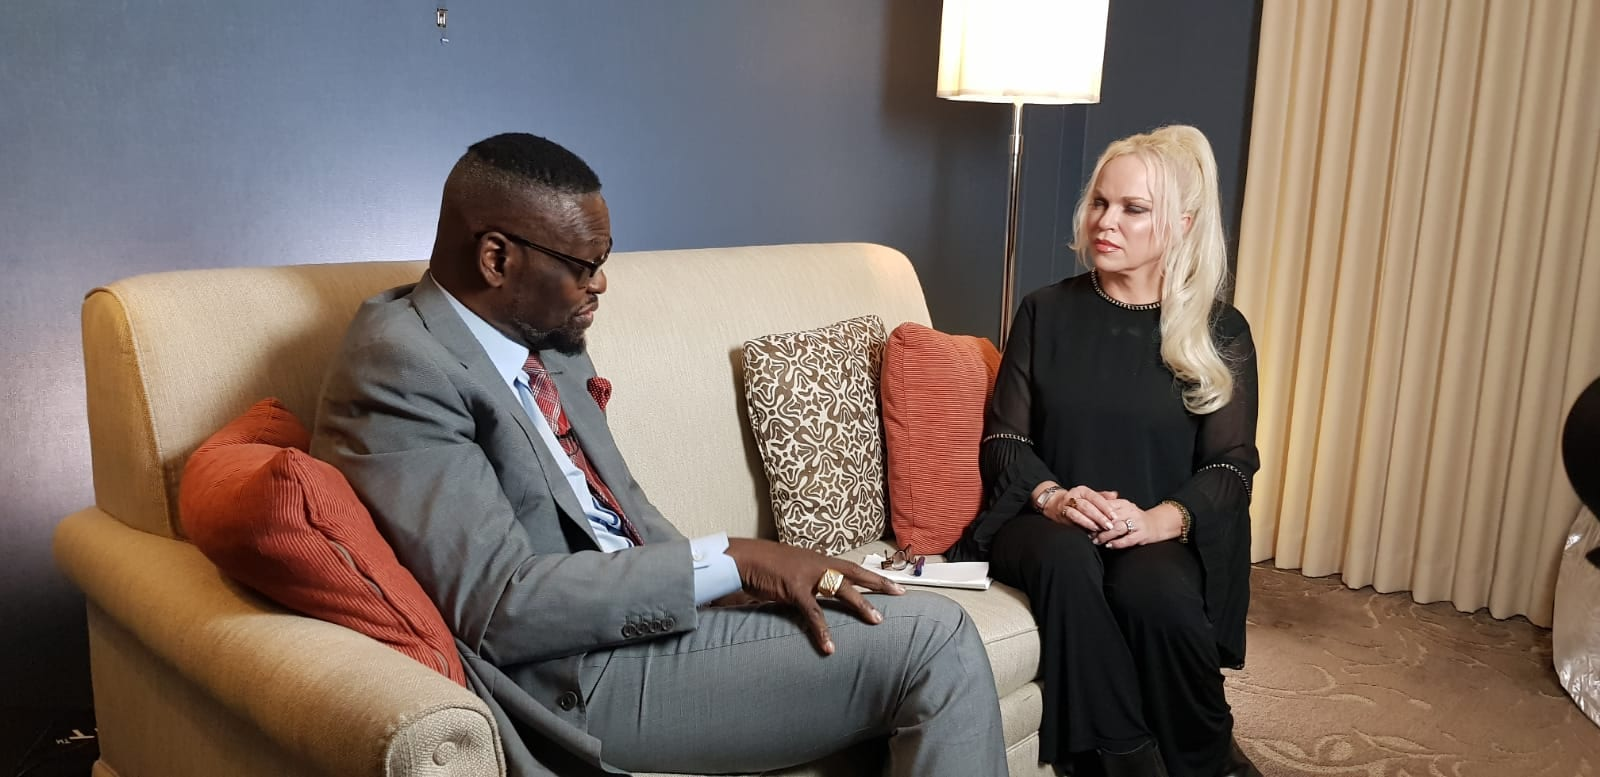 Bishop Harry Jackson and Hanne Nabintu Herland Washington DC, 2019